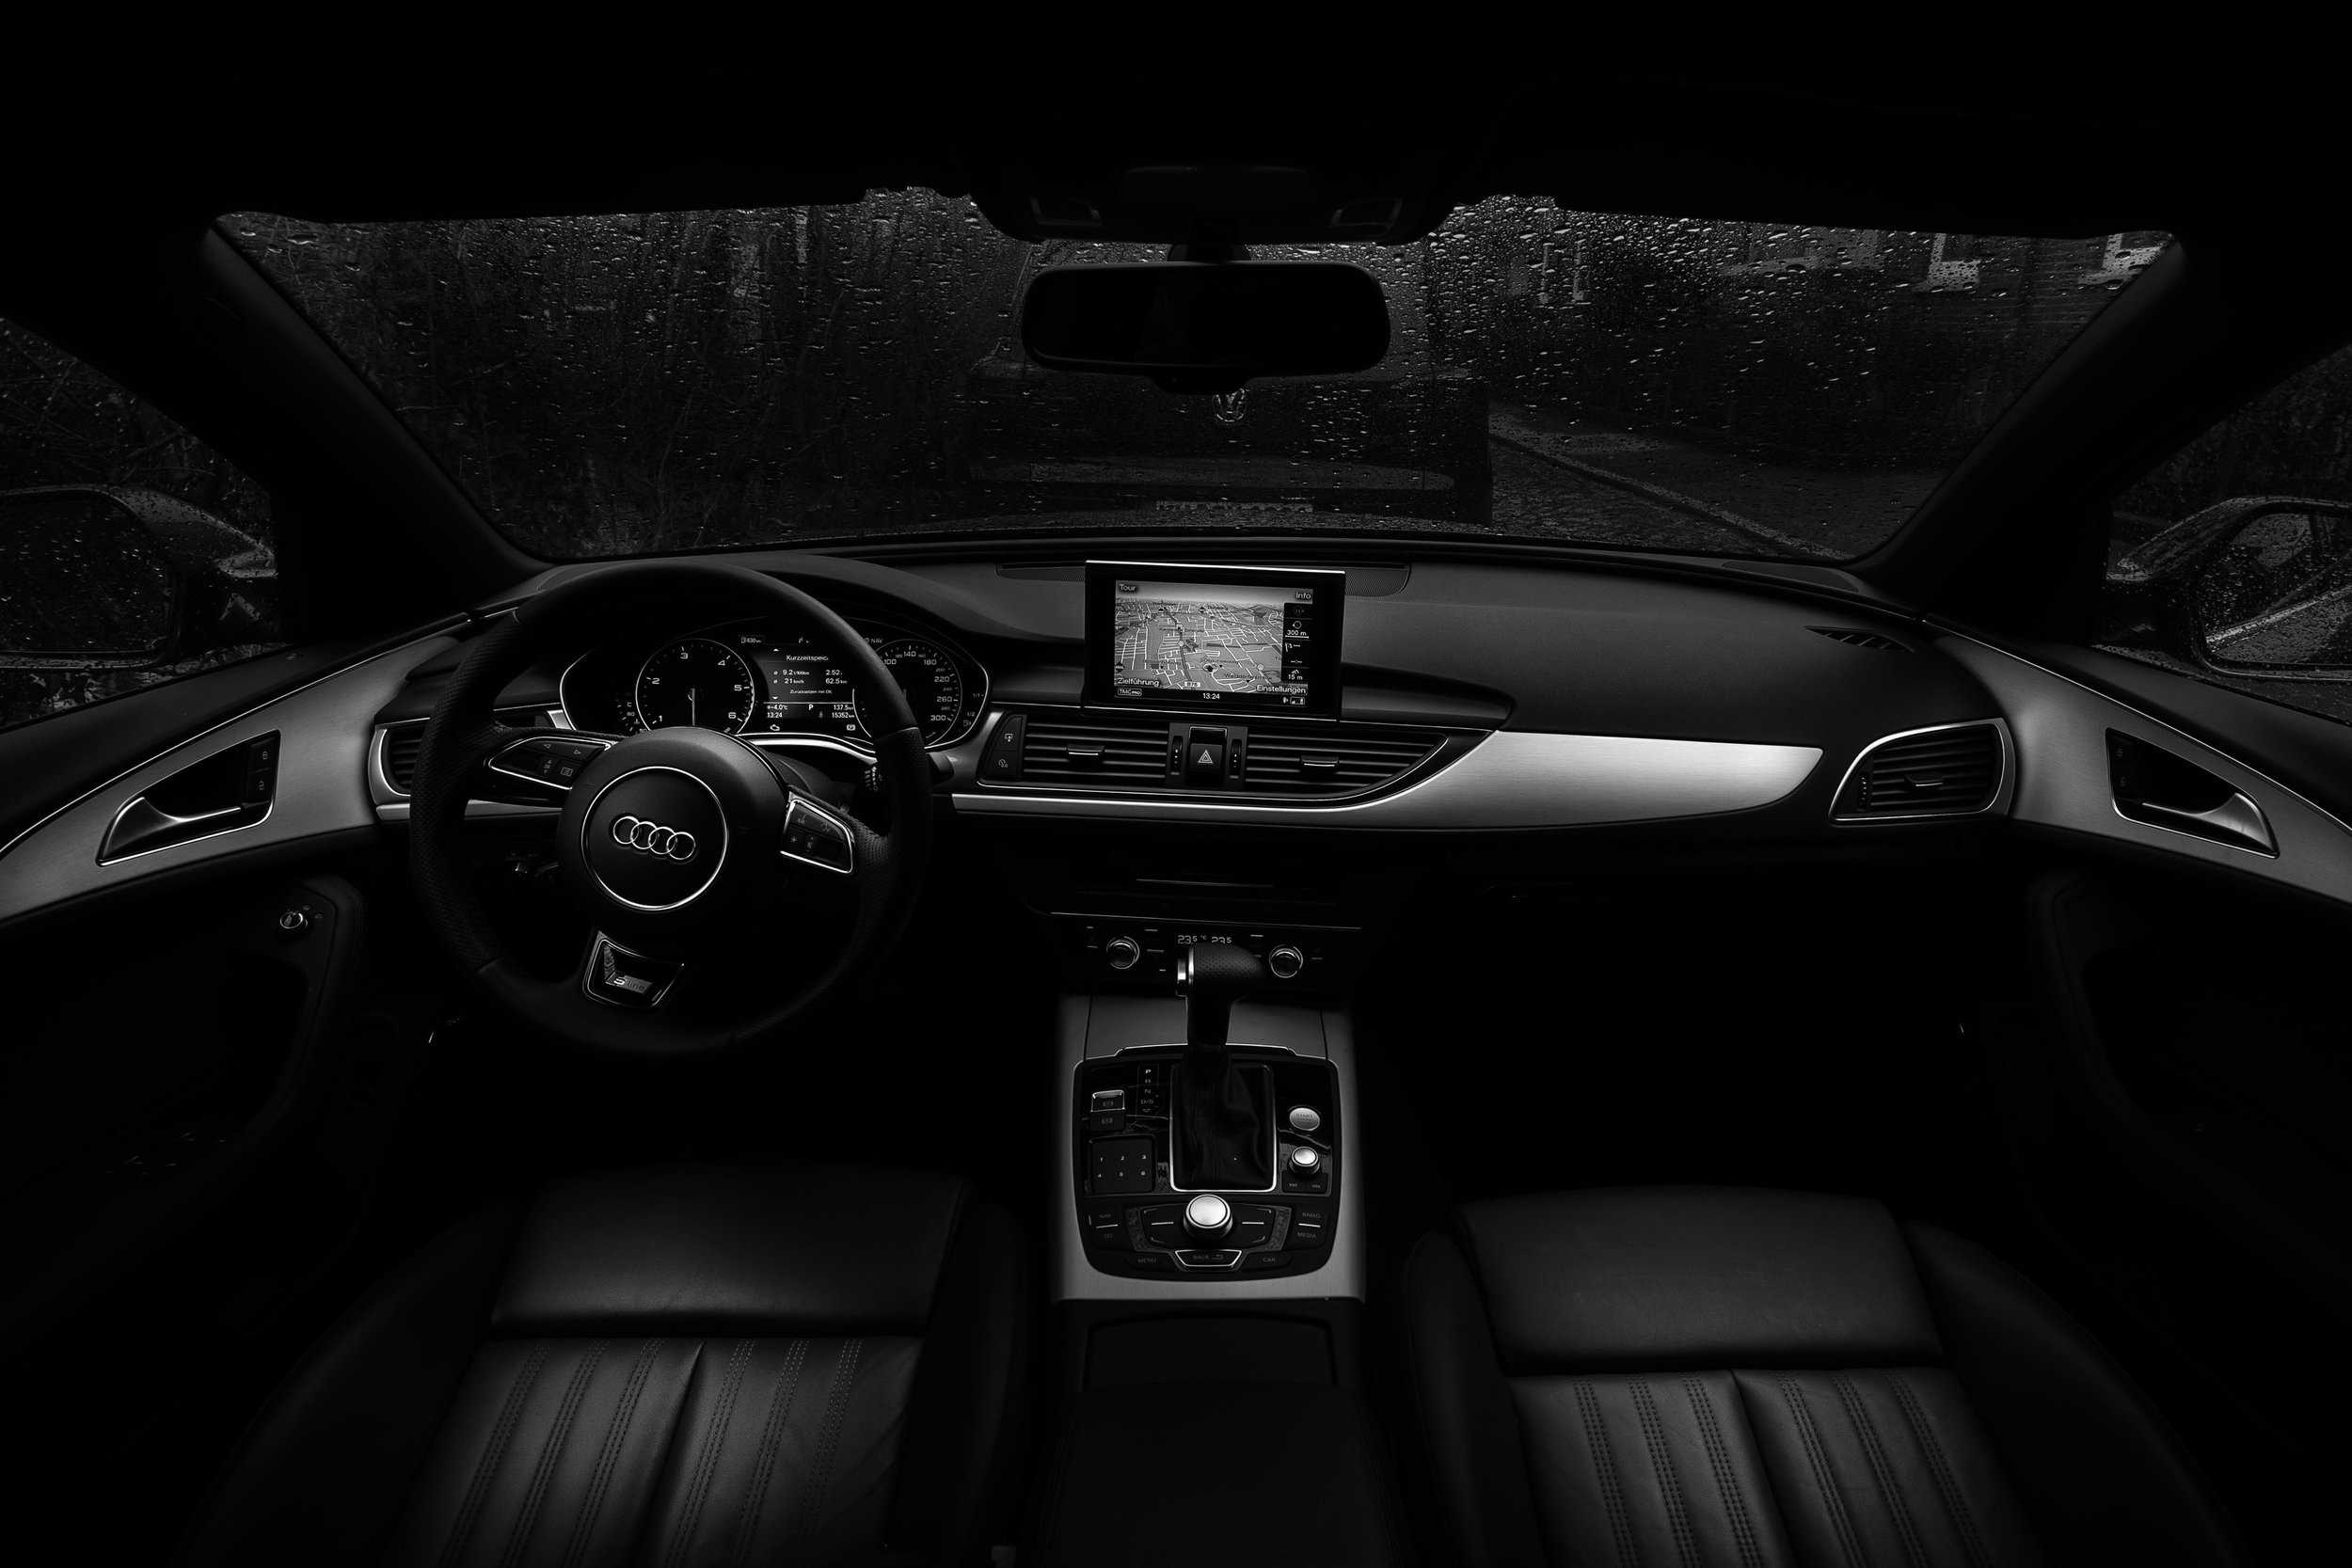 black-car-interior.jpg